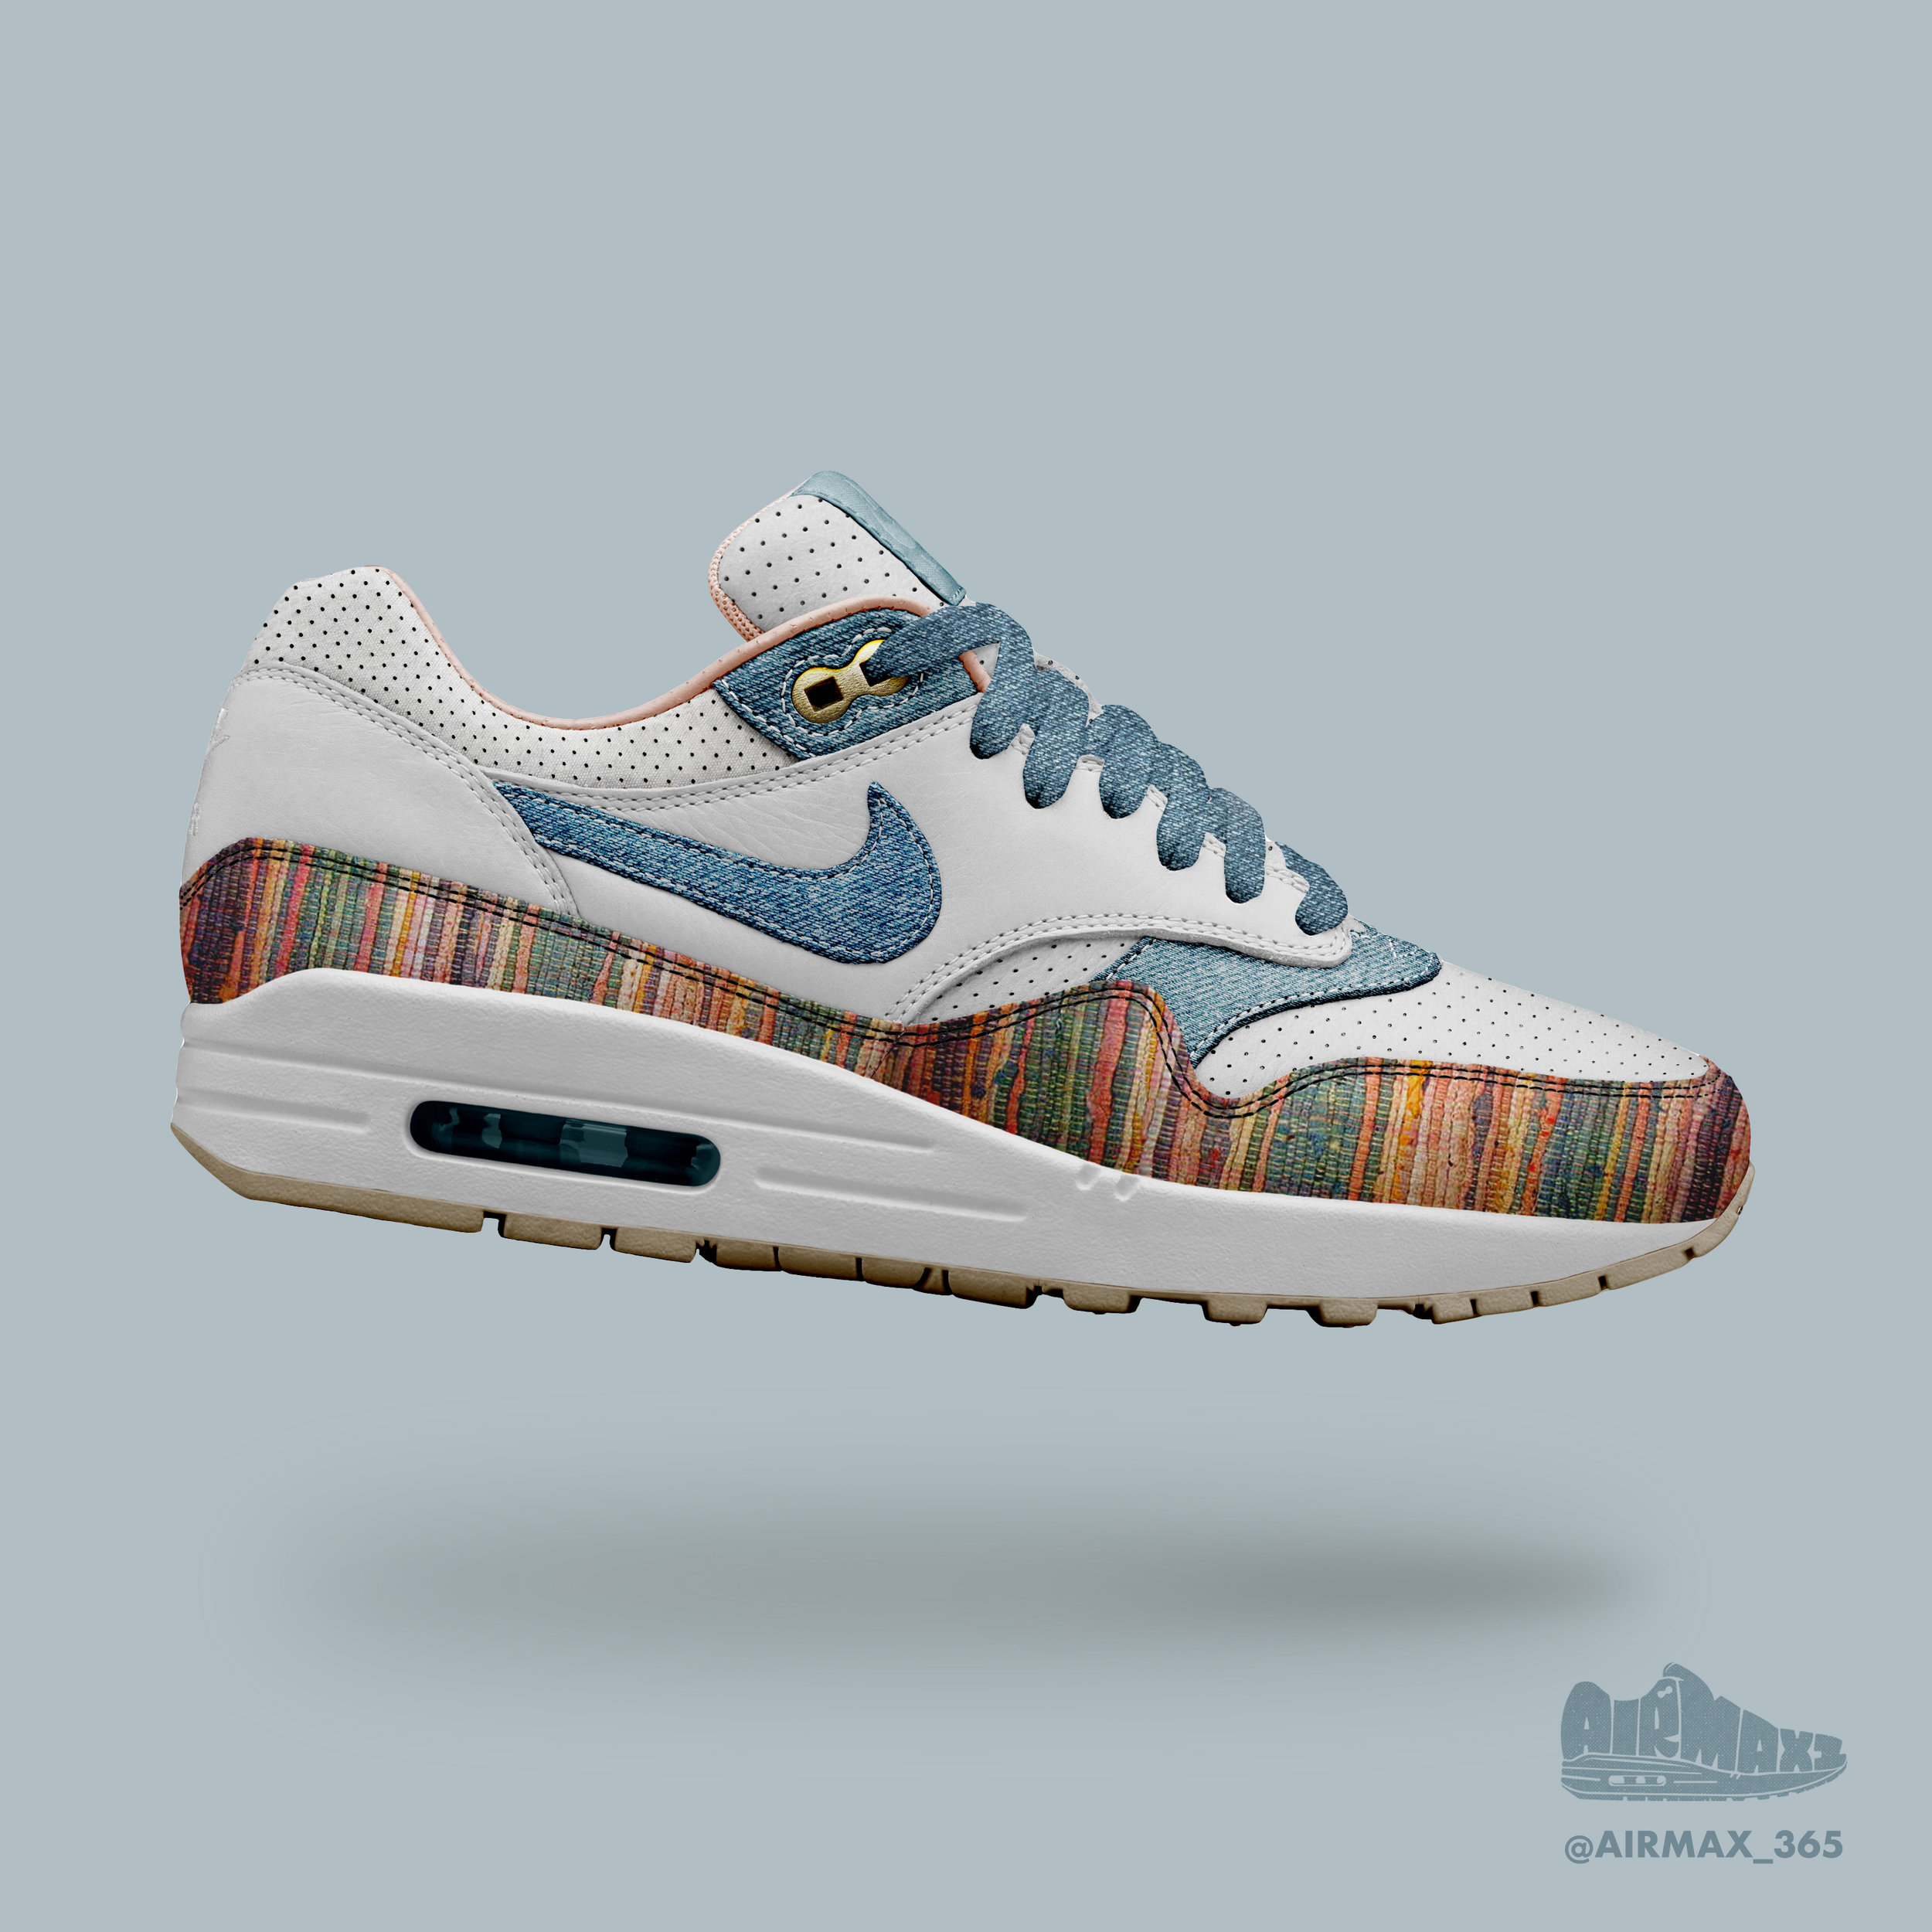 Day 309: Air Max 1 Spectrum Knit